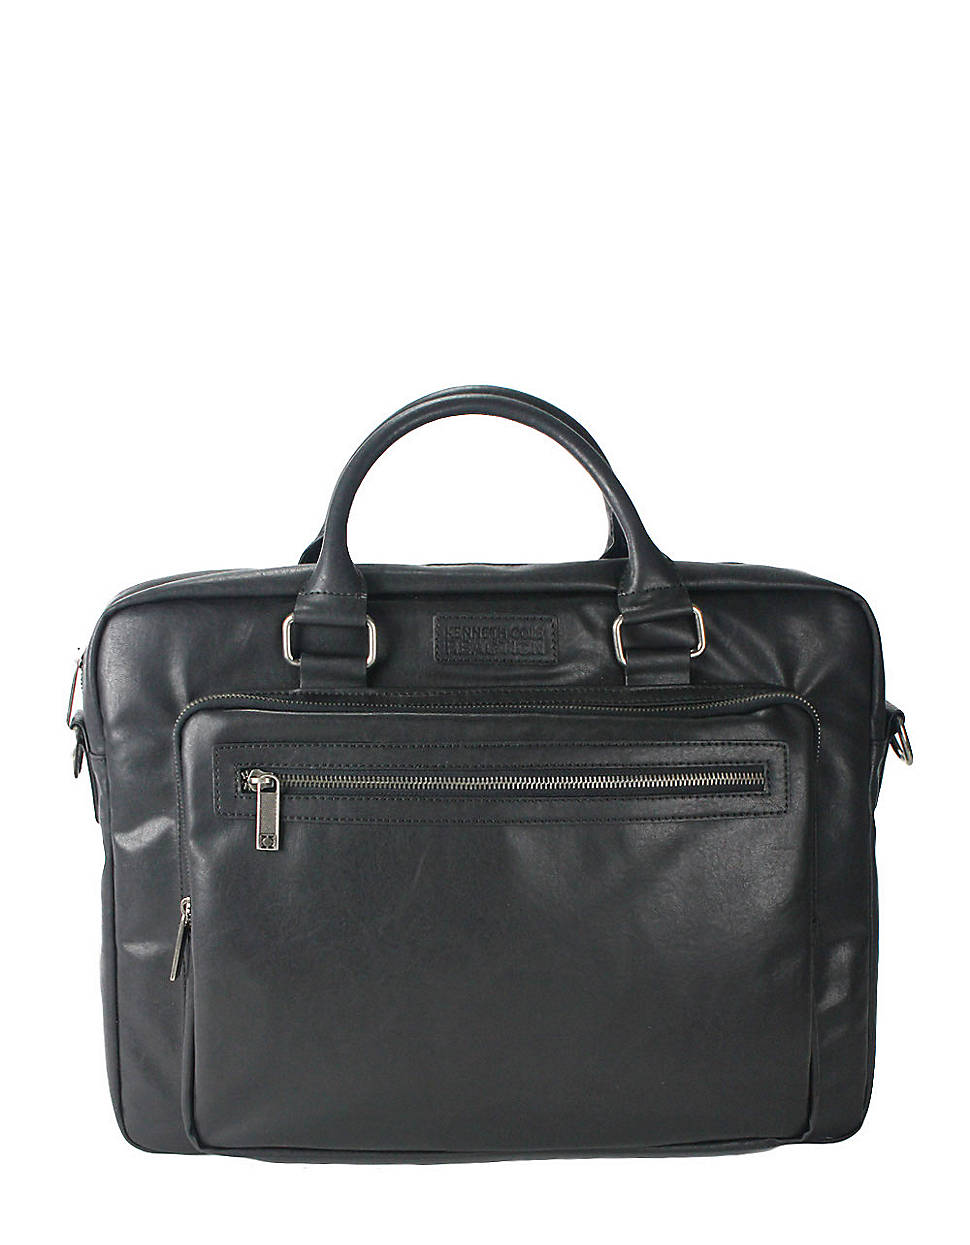 Kenneth Cole Reaction North End Laptop Bag In Black For